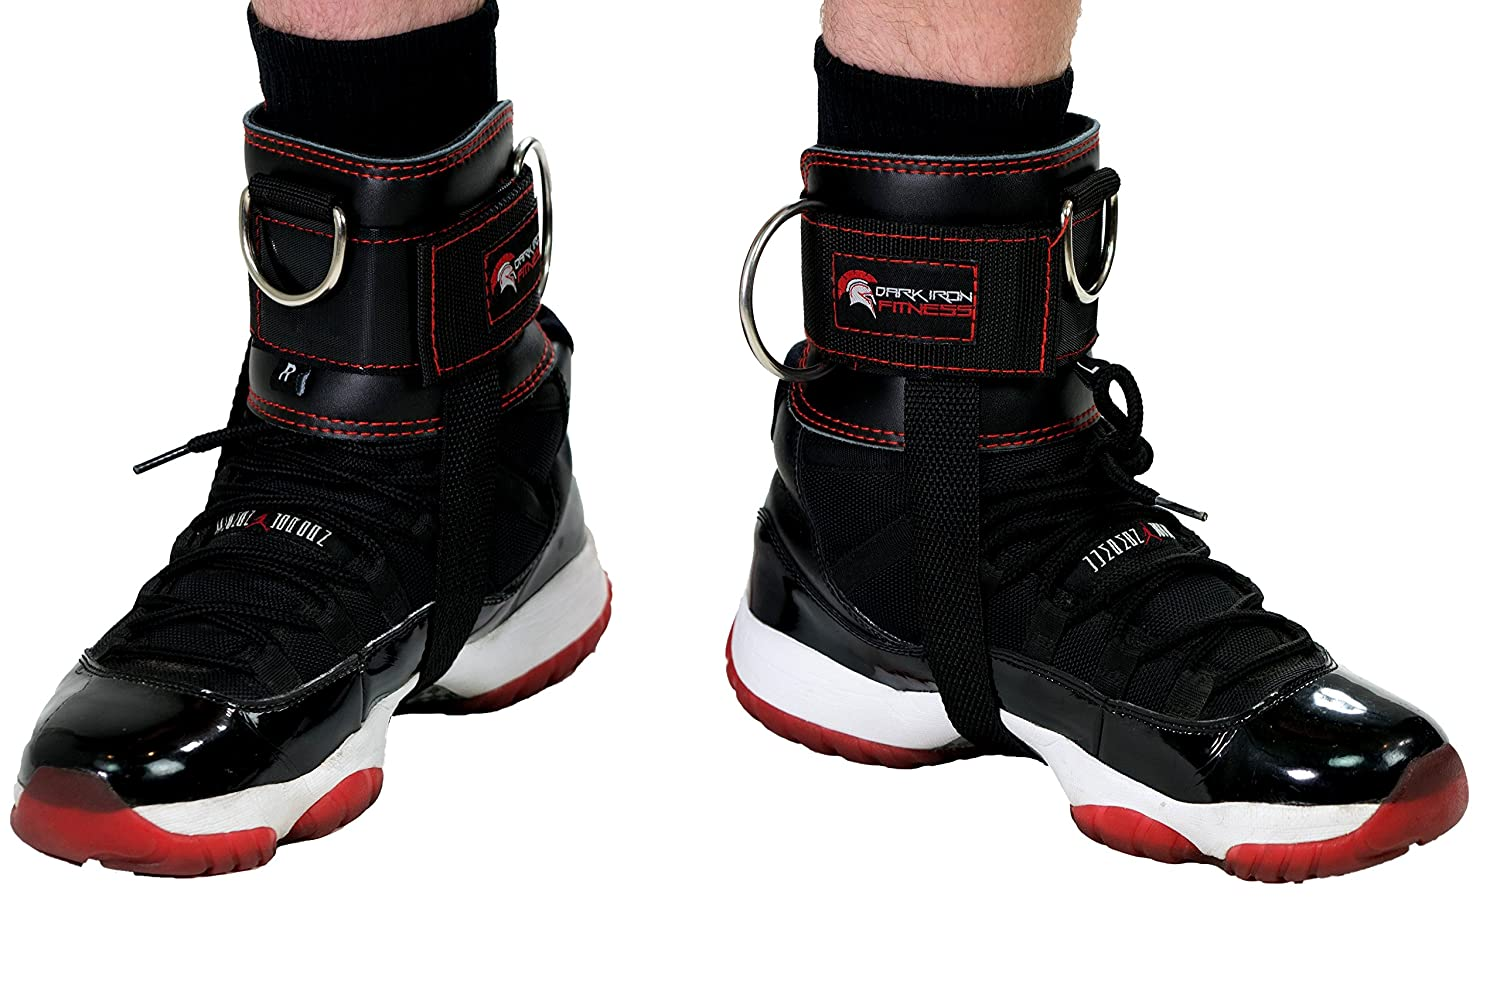 The Best Cable Exercises with an Ankle Strap - Dark Iron Fitness Ankle Straps